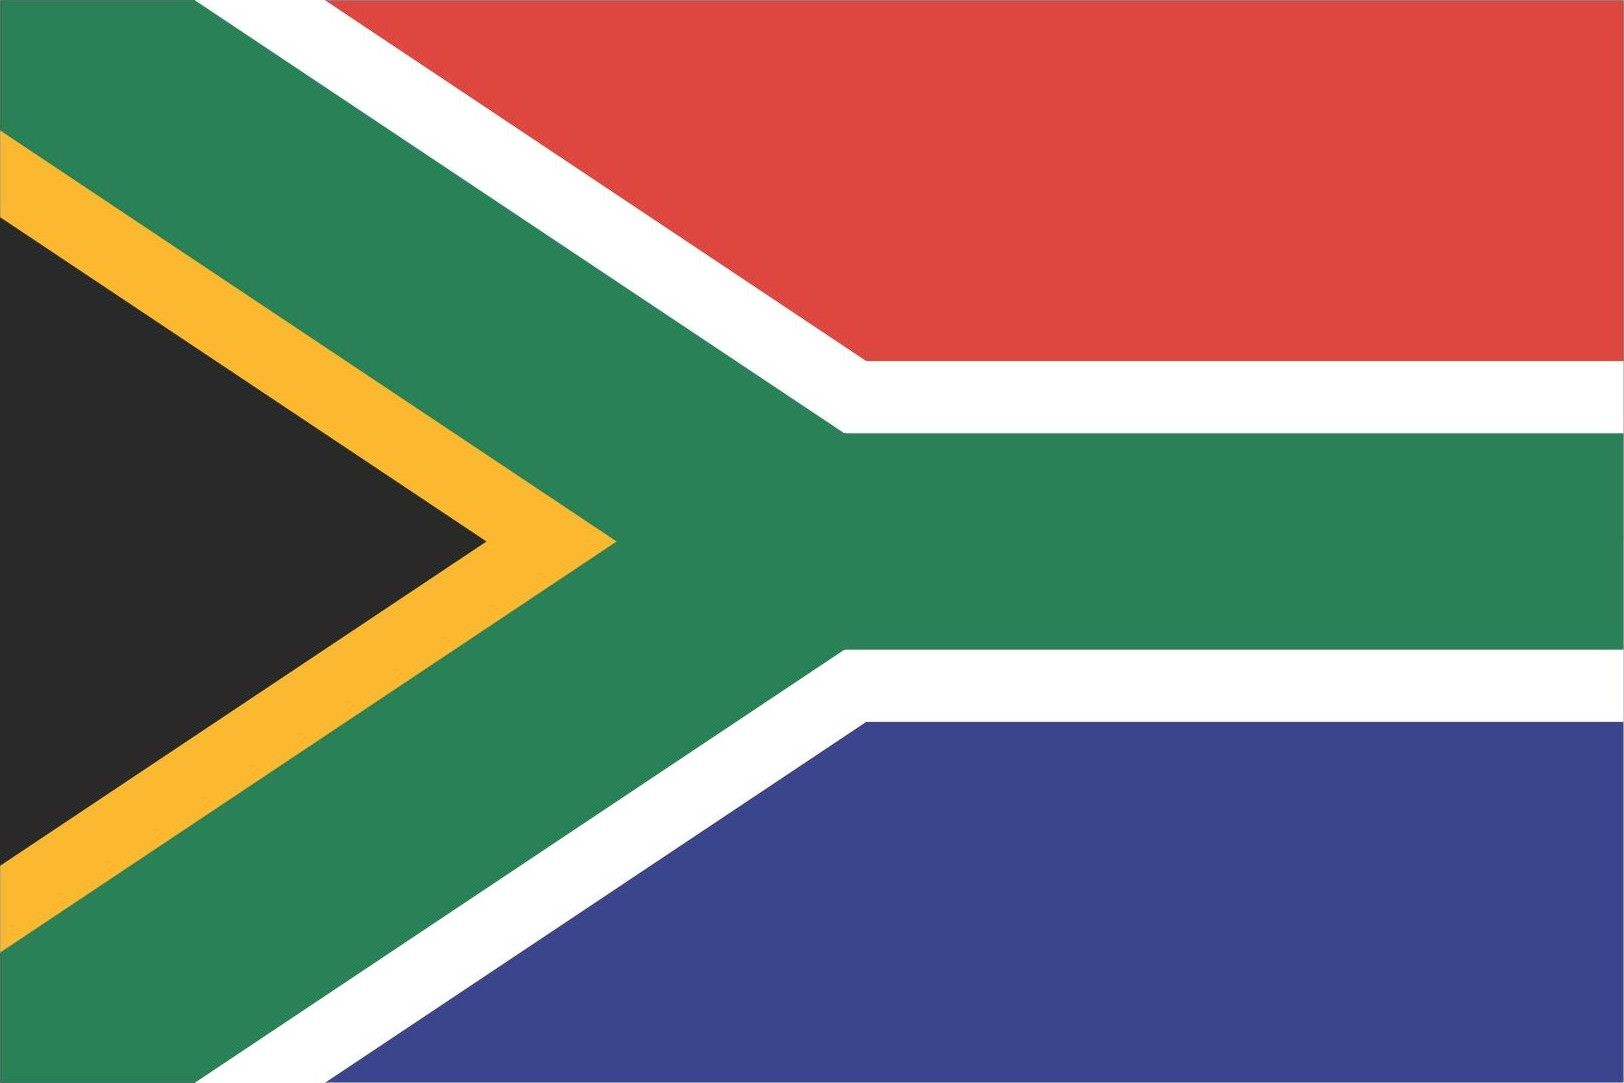 South Africa Flag And Emblem South African